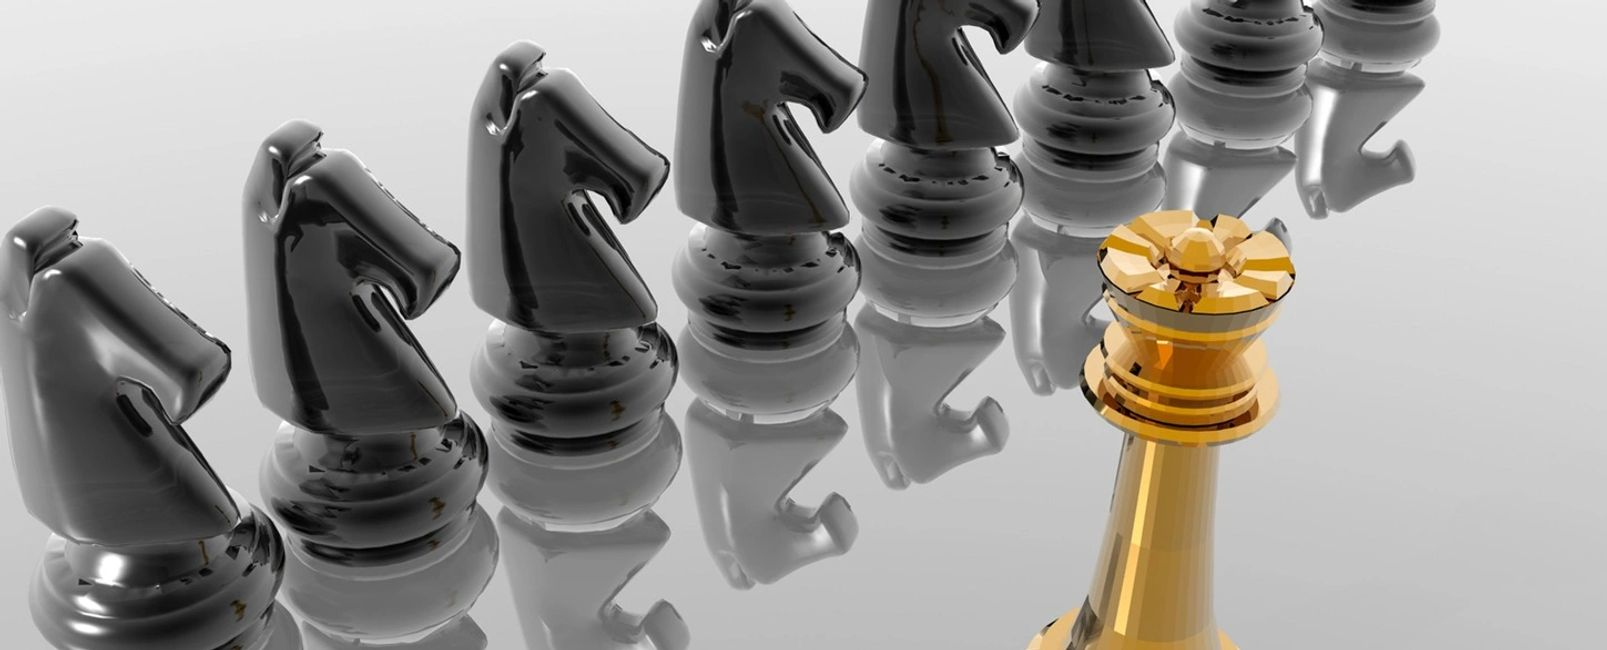 Chess pieces represent how Martius Group helps clients lead people to perform on purpose.